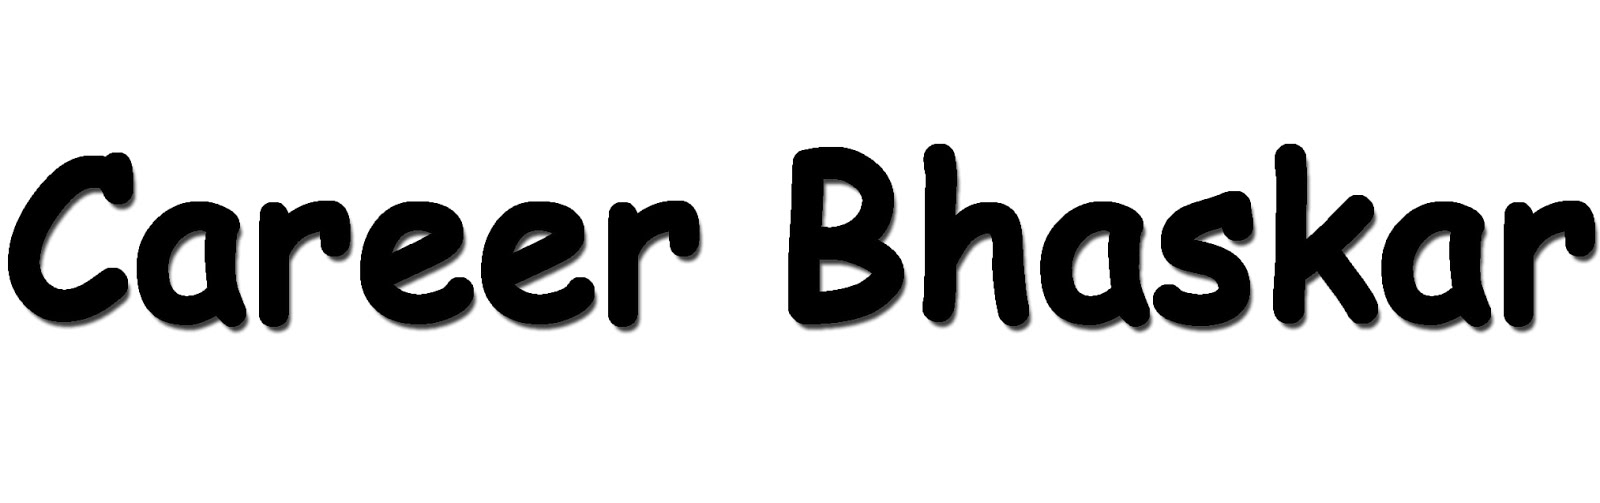 Career Bhaskar - Central India's Fastest Growing News Portal